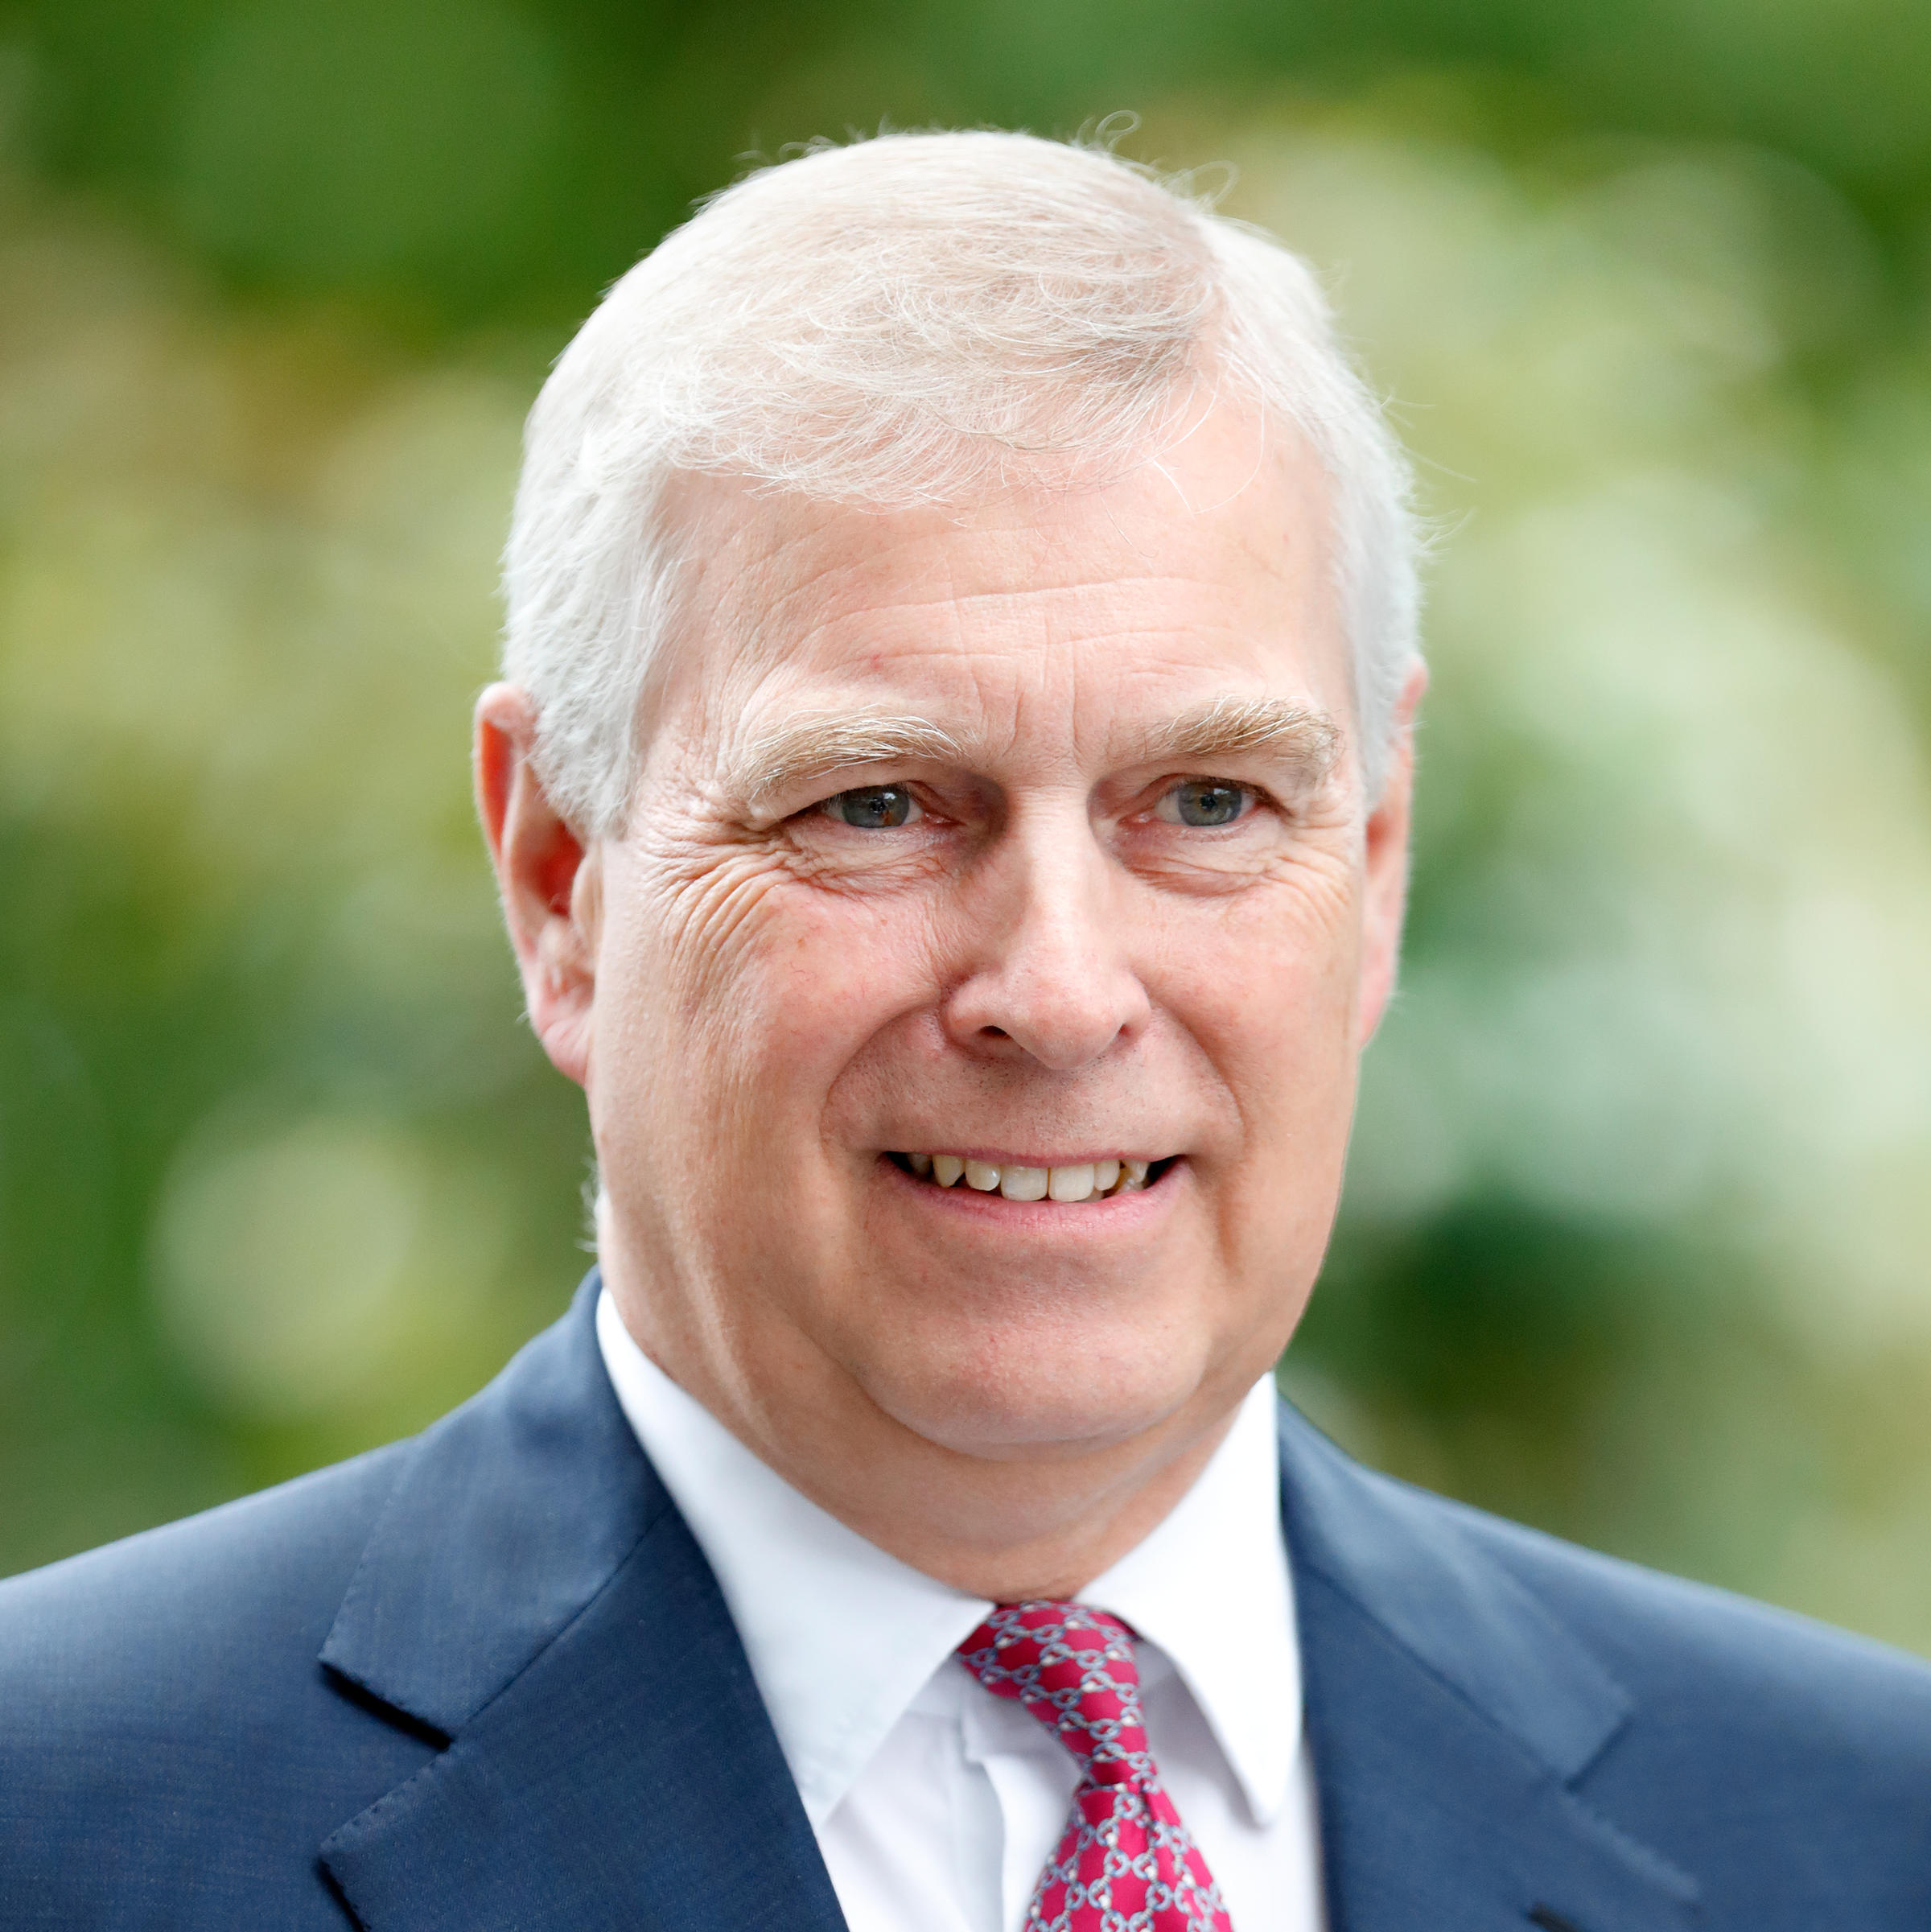 Amid A Brewing Royal Scandal Prince Andrew Distances Himself From